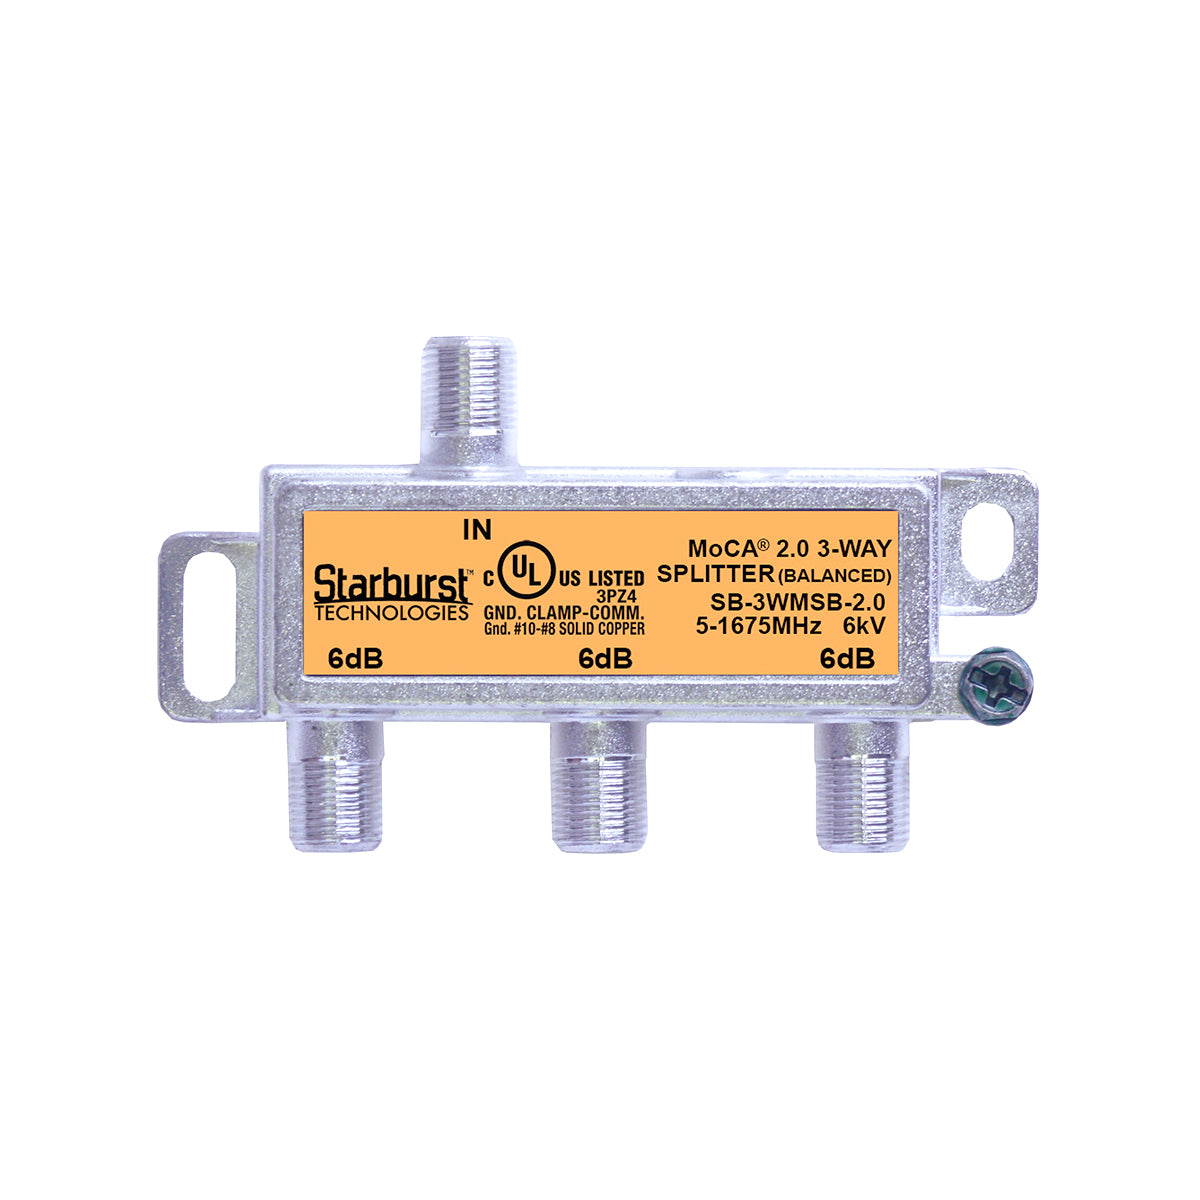 SB-3WMSB-2.0 MoCA 2.0 Splitter 3 Way Horizontal Balanced 5-1675MHz Wide Band